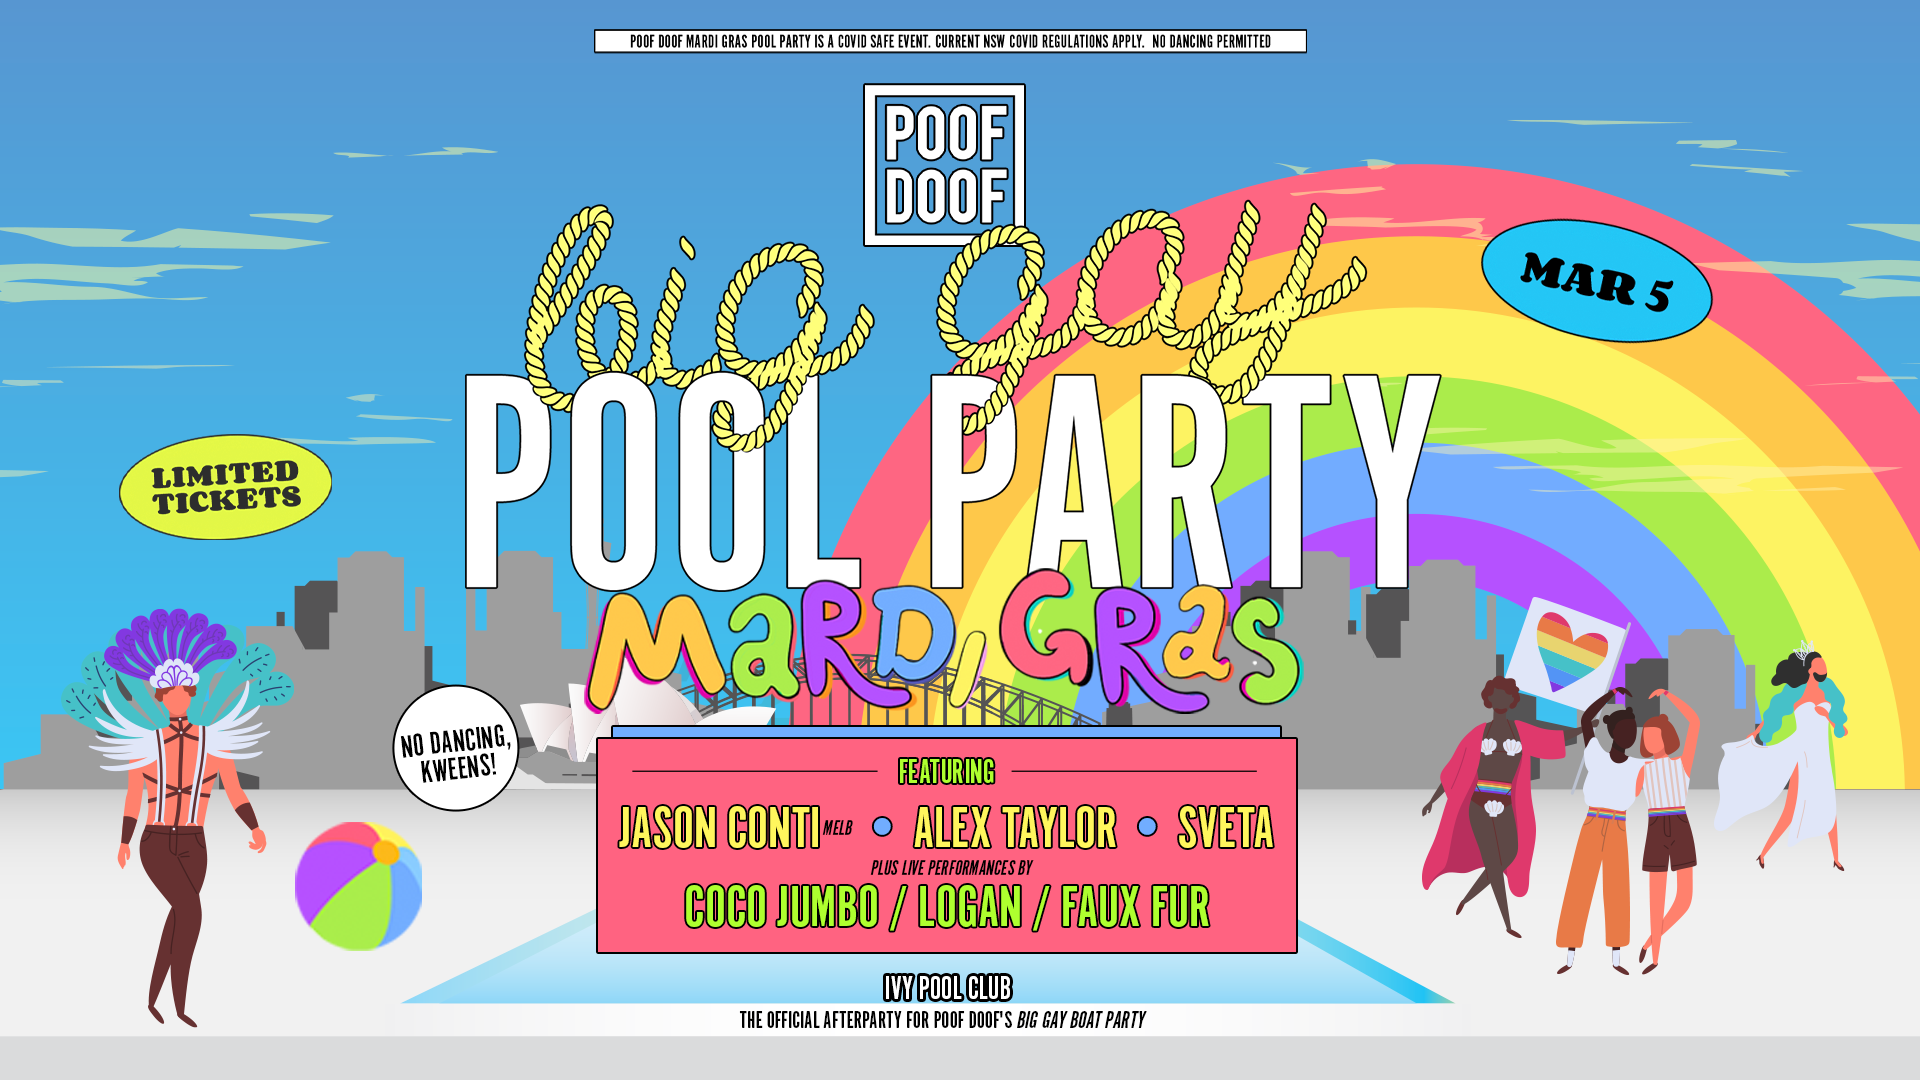 Tickets for POOF DOOF Sydney Big Gay Pool Party in Sydney from Merivale